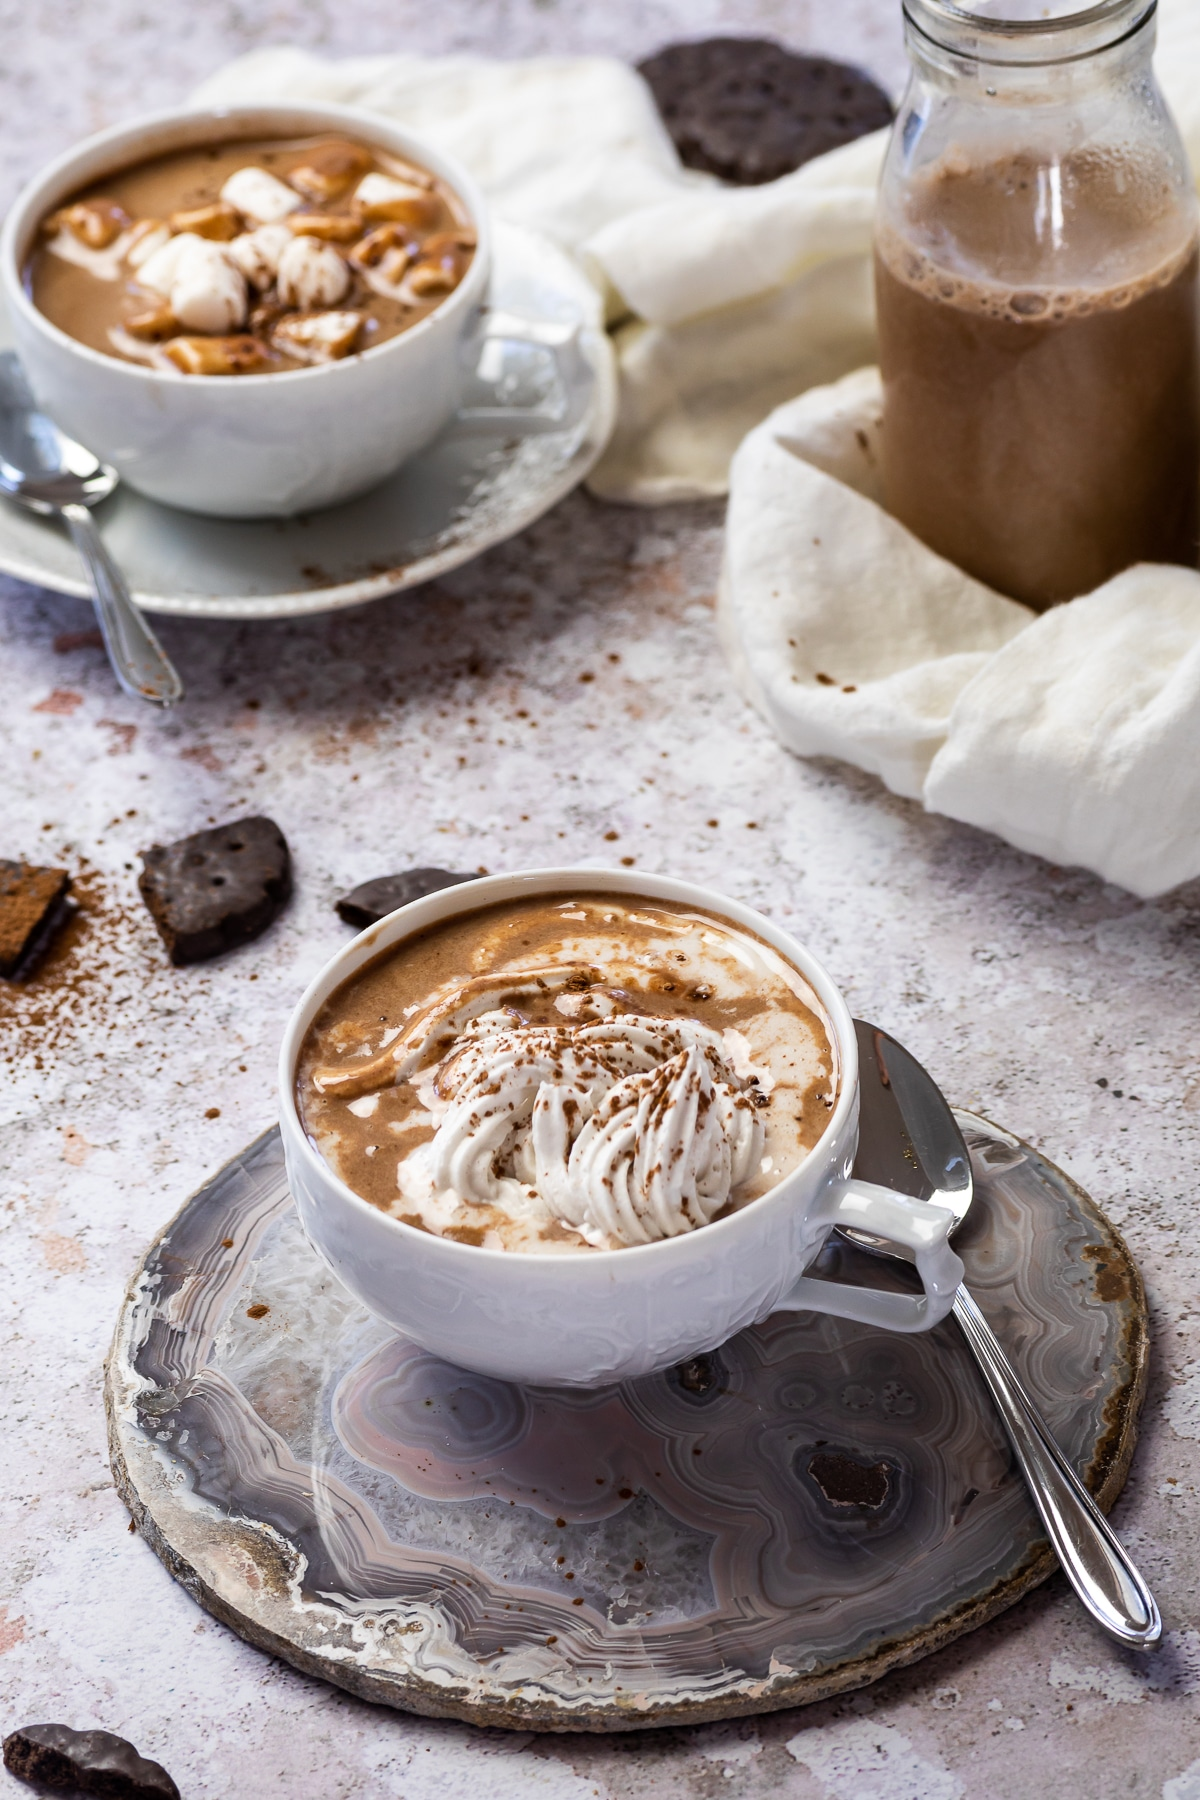 2 cups of hot chocolate one with coconut cream and one with marshmallows topped.